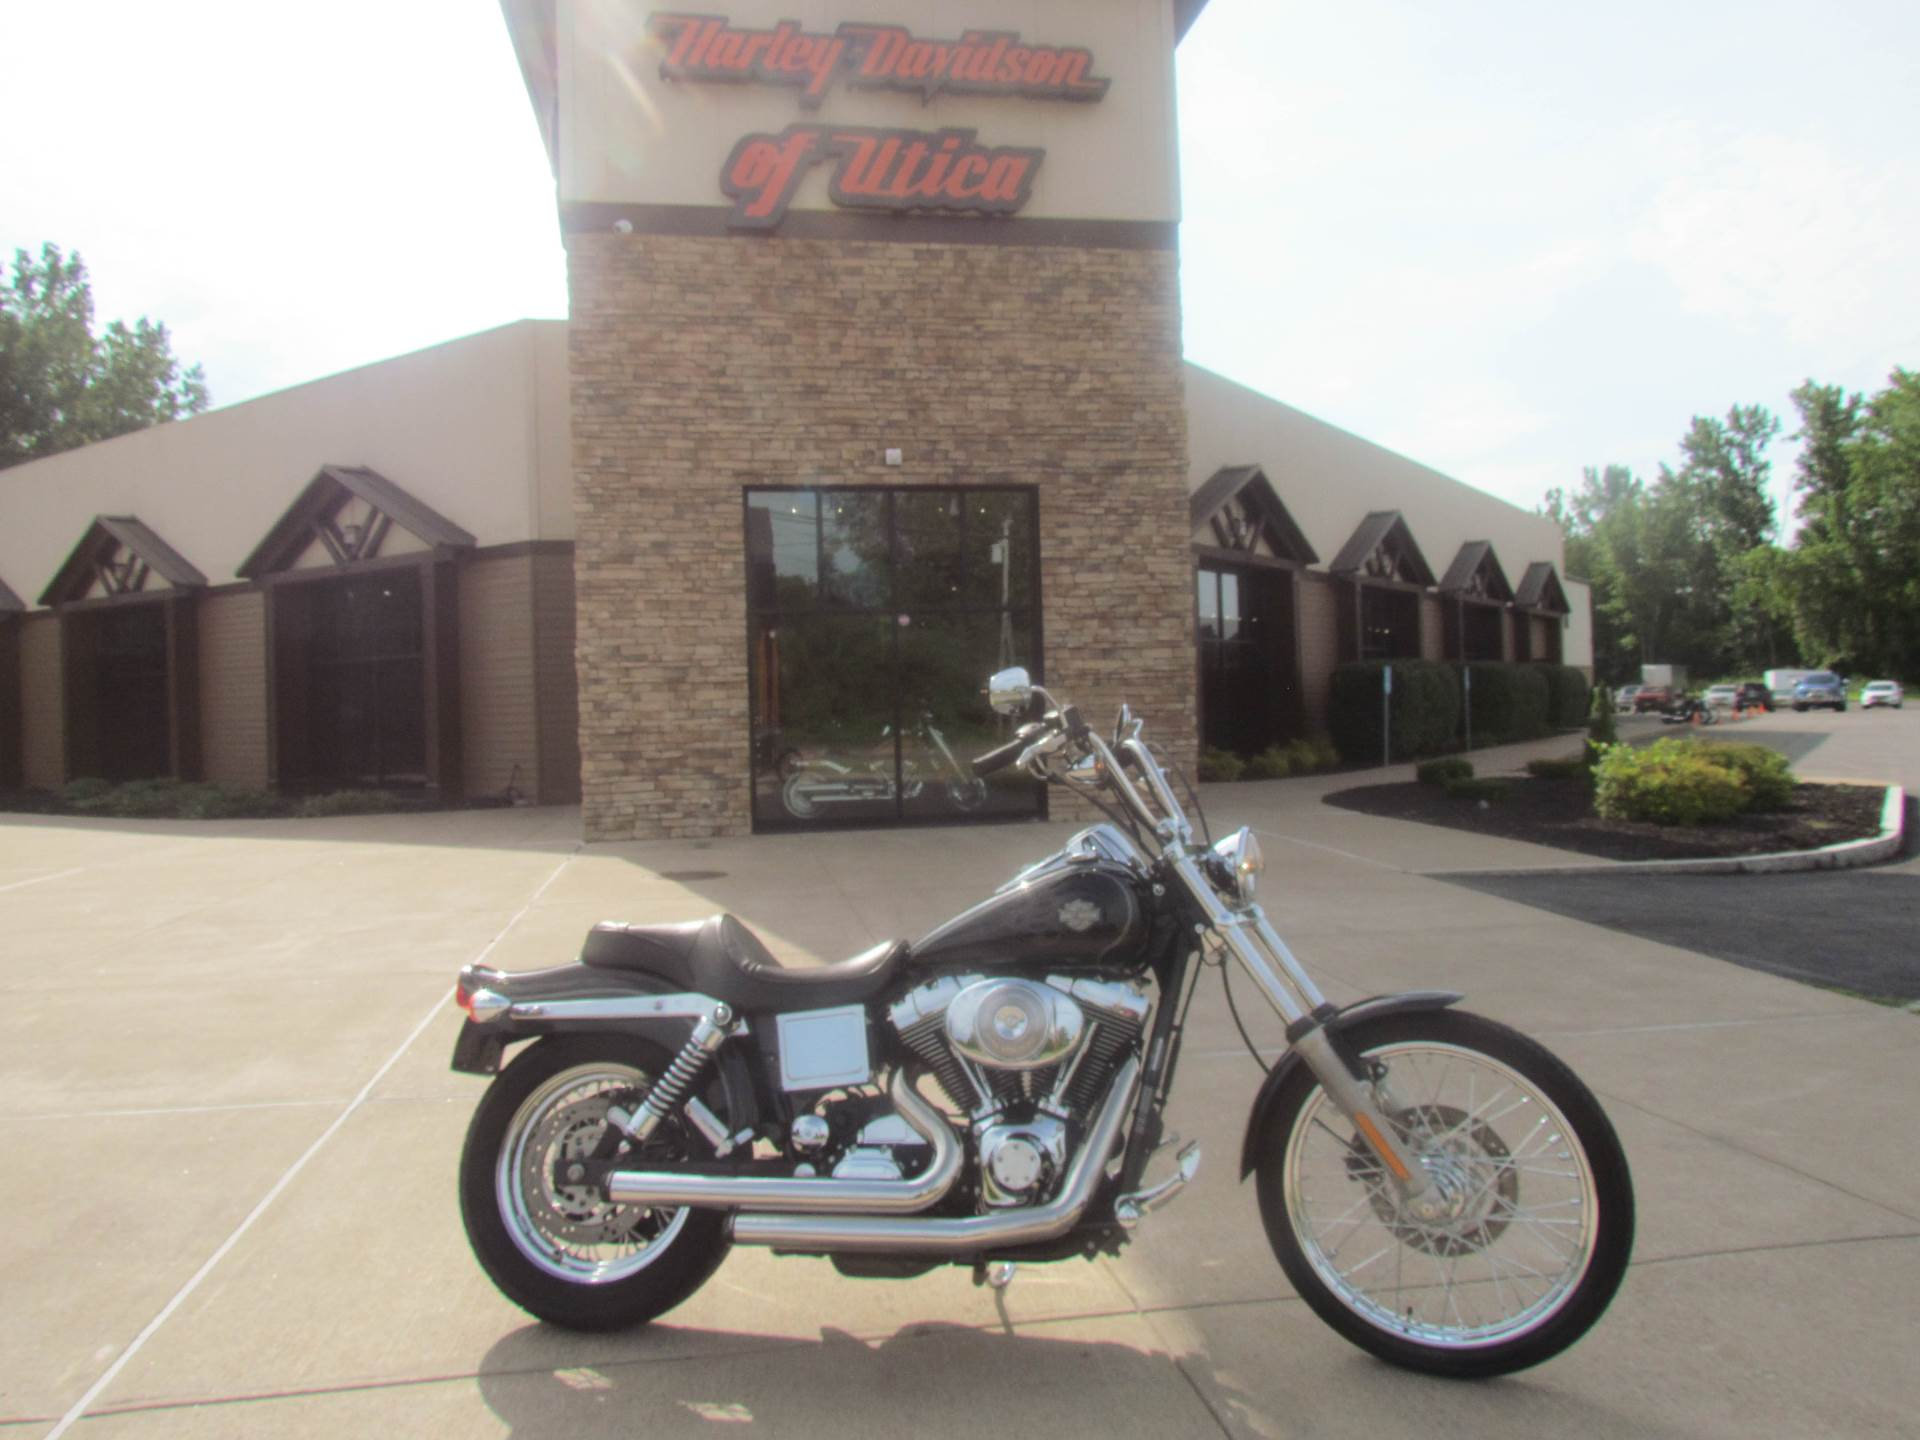 2005 Harley-Davidson FXDWG/FXDWGI Dyna Wide Glide® in New York Mills, New York - Photo 12